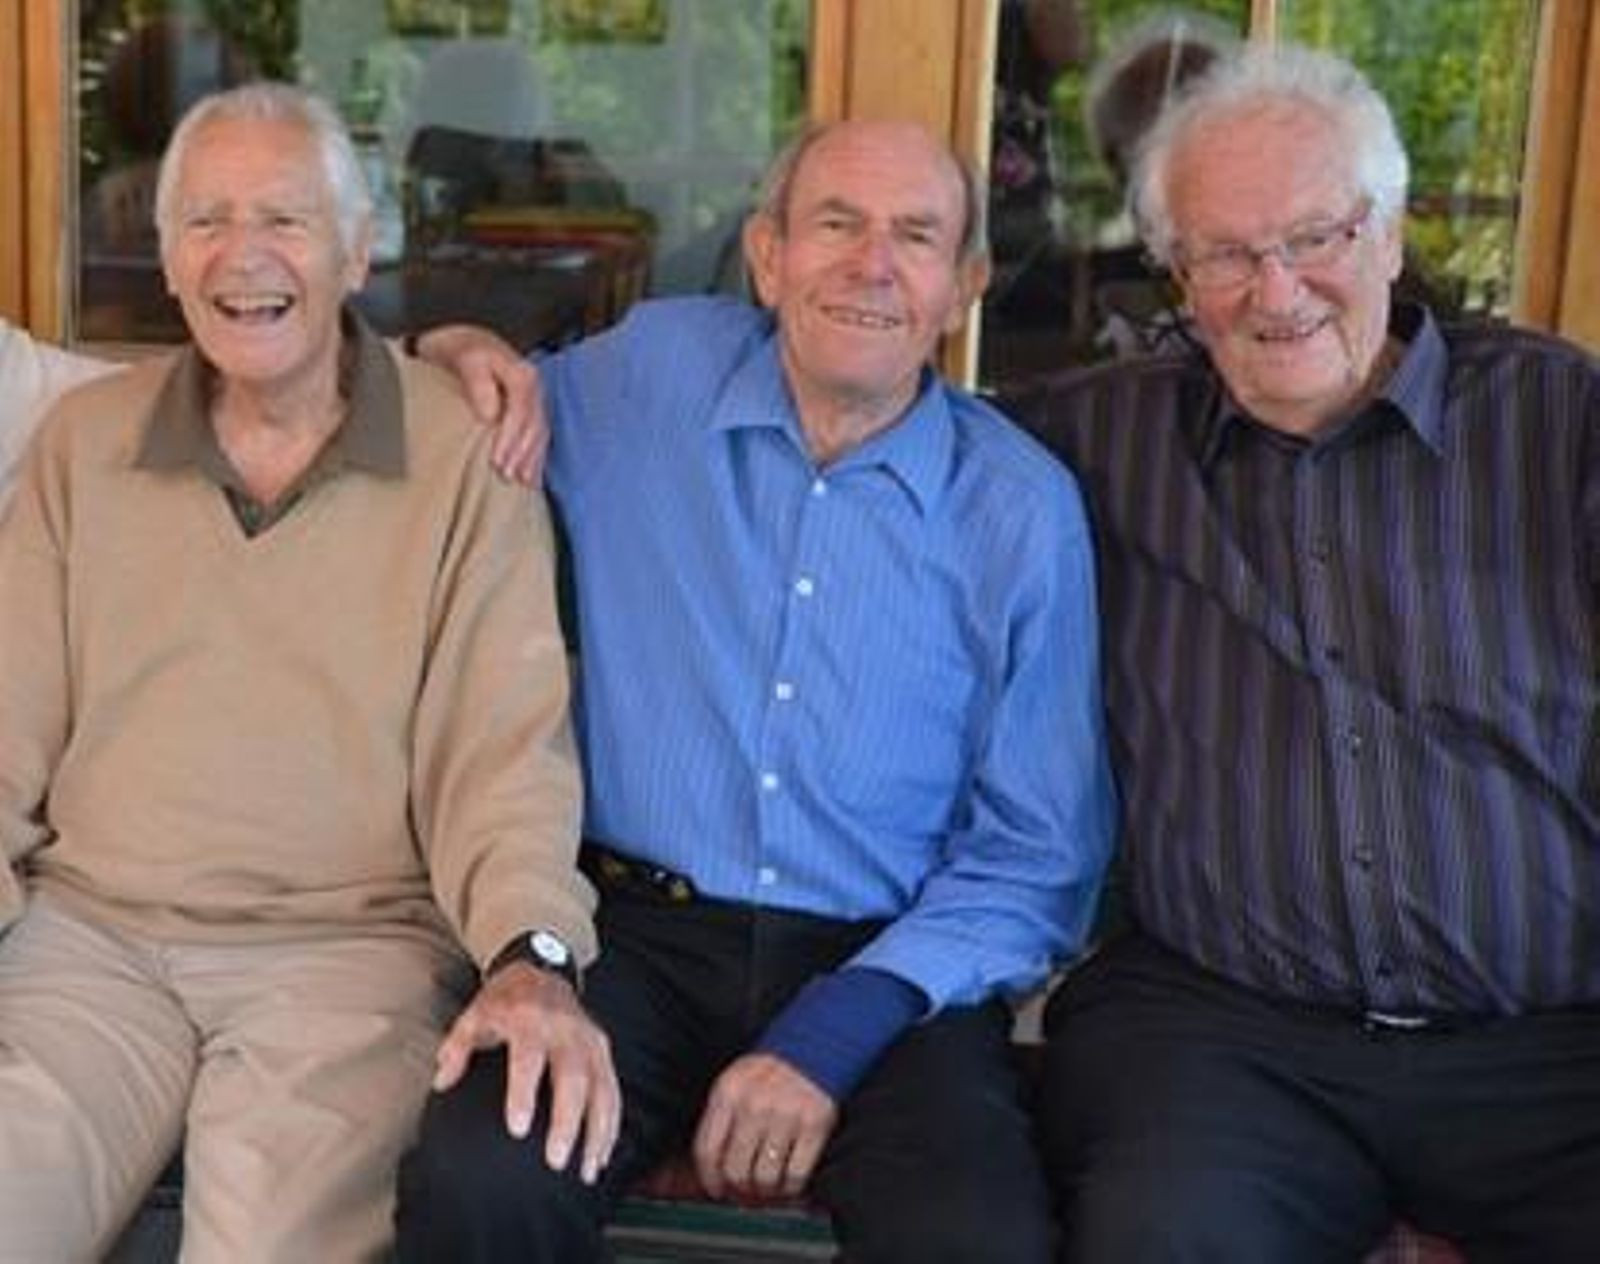 Erich Schriever, right, pictured with Emile Knecht, left, and Rudolf Reichling, centre, has died at 95 ©Twitter/@OldestOlympians